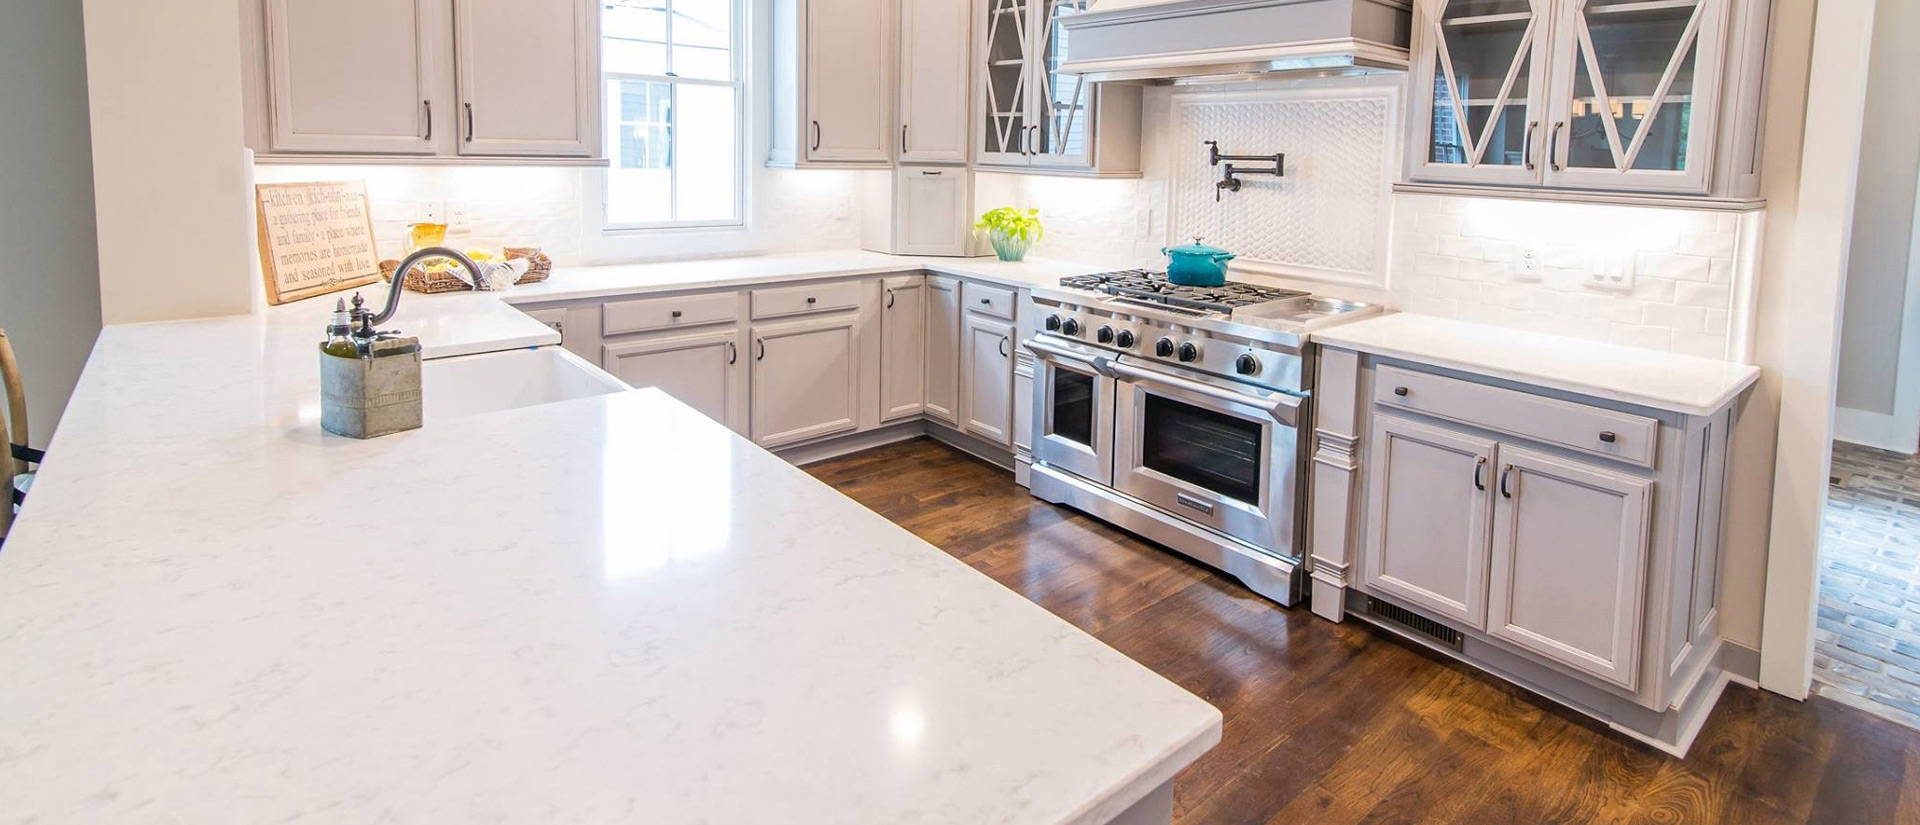 Top Selling Countertop Products on Granite Selection.